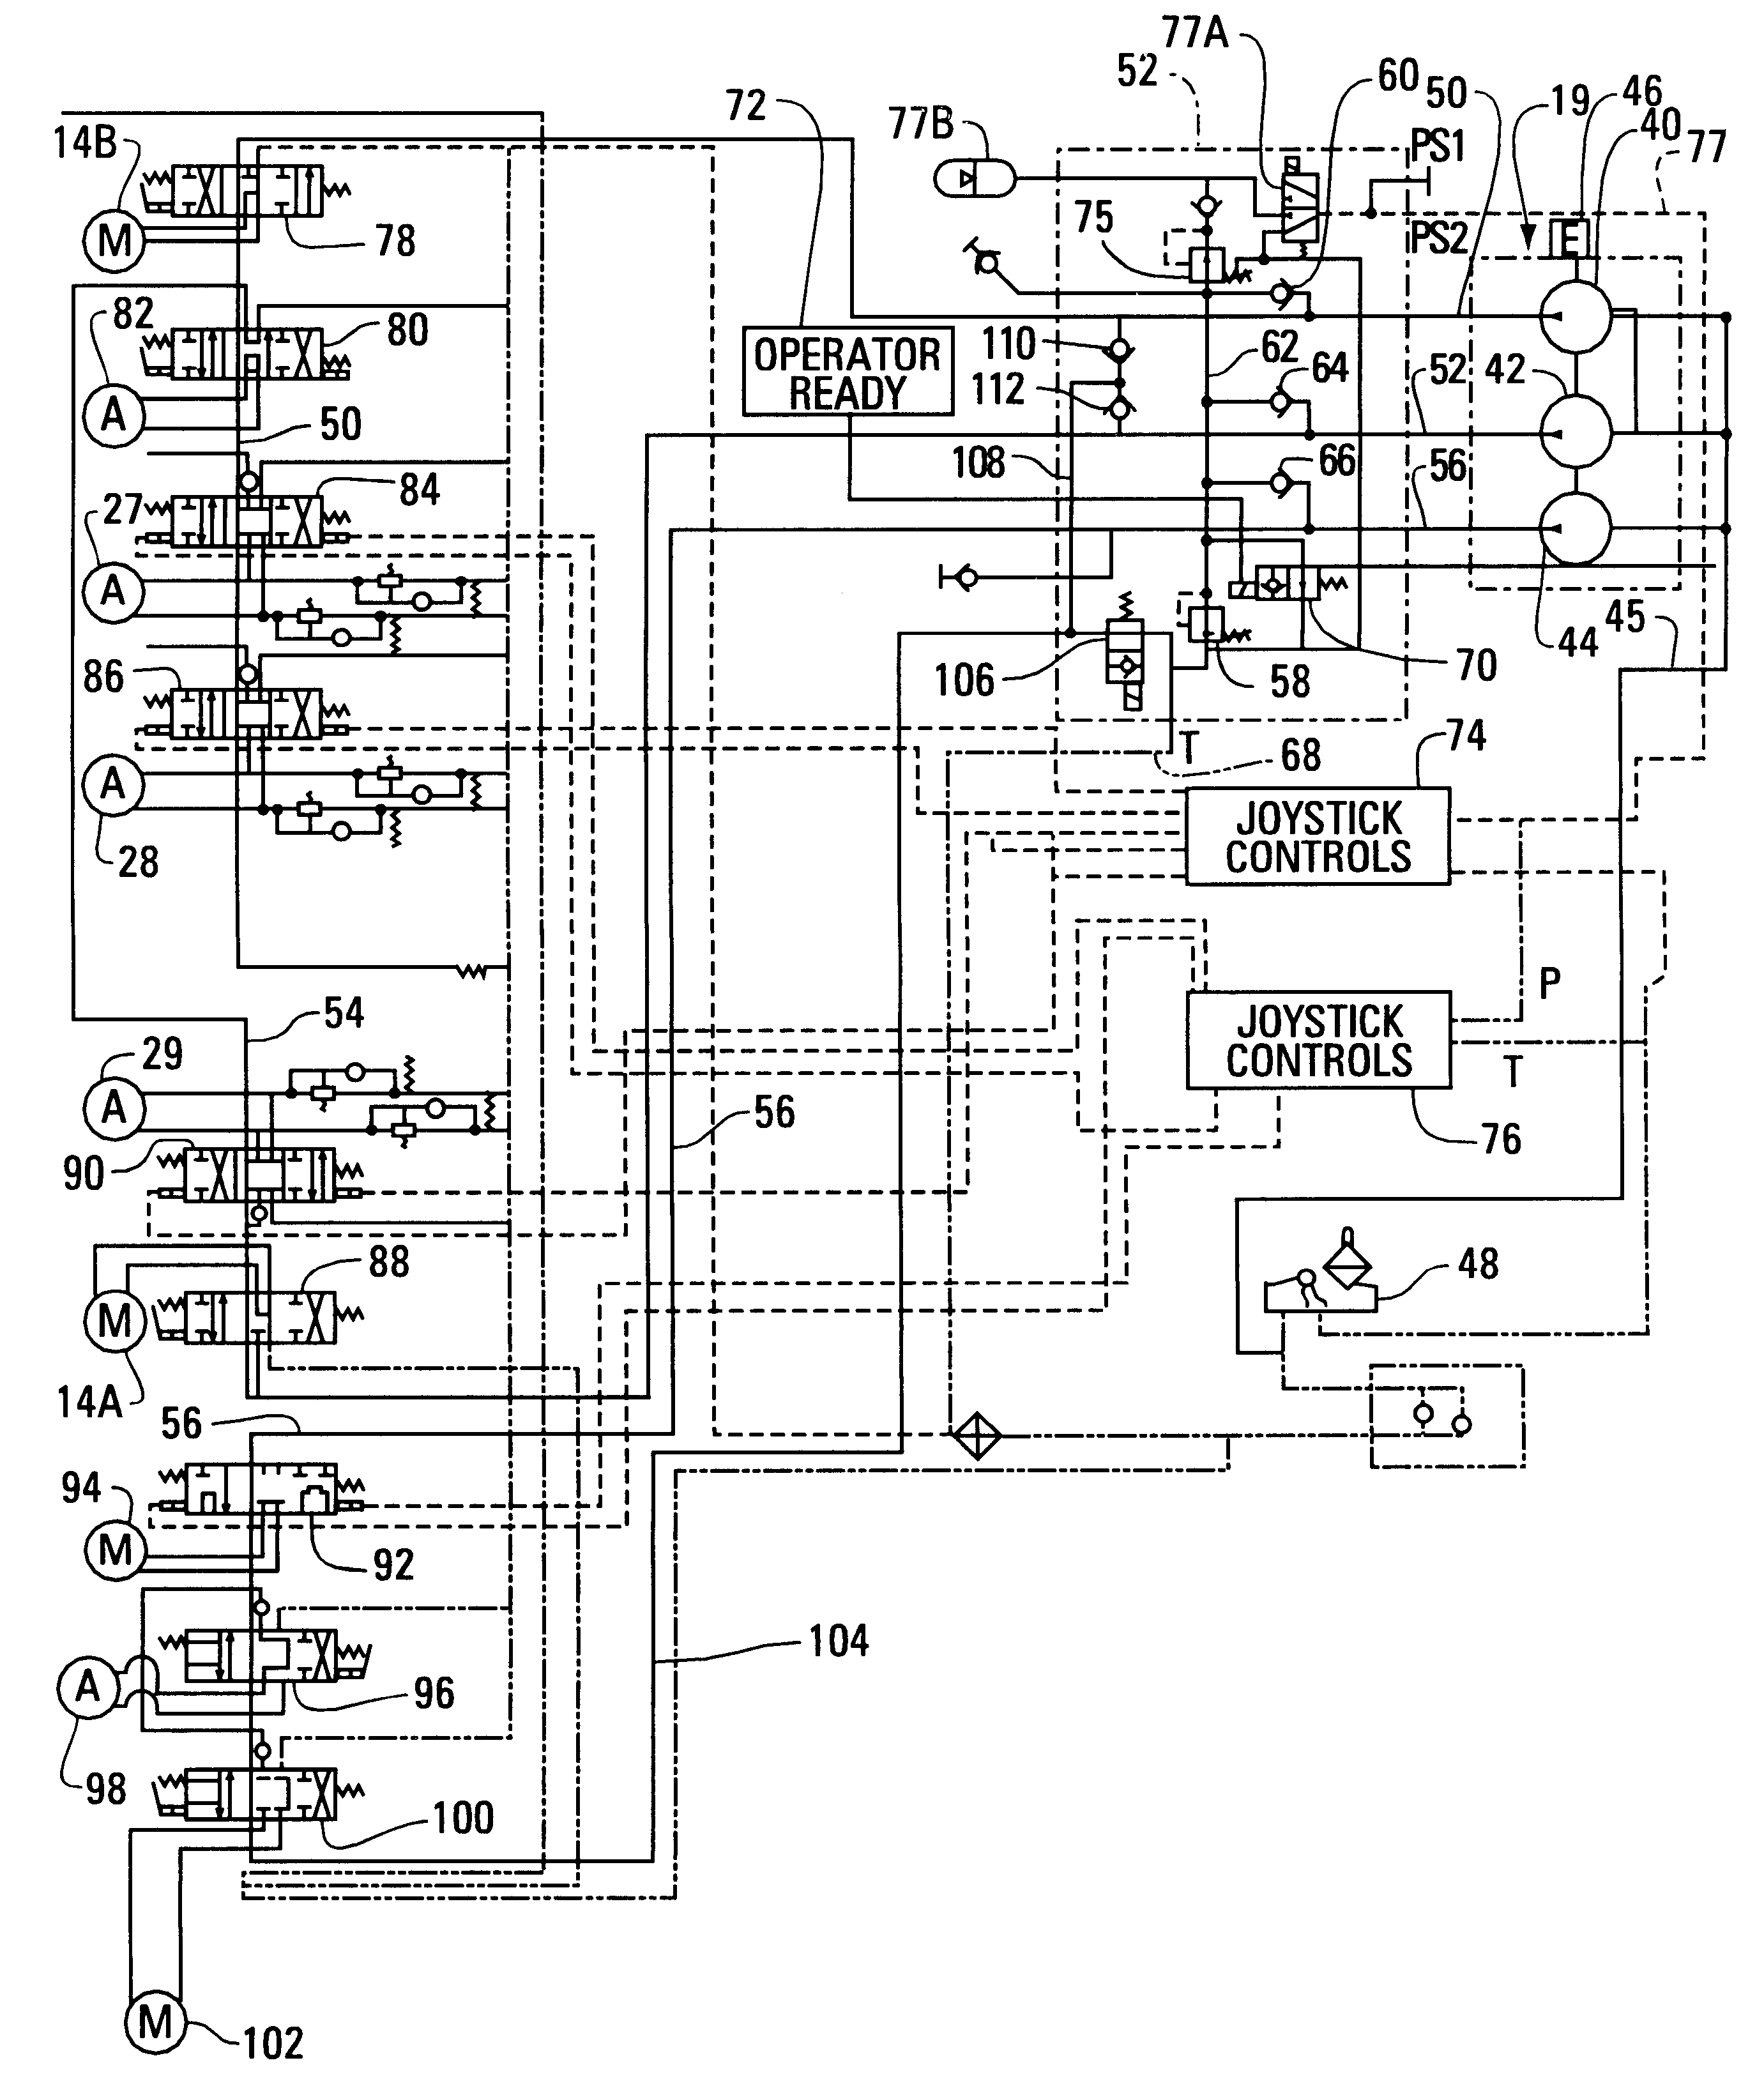 Carburetor Assembly as well Show product together with 1973 Mopar Alternator Wiring Diagram as well 2004 Mazda 3 Wiring Diagram Stereo further Simple Relay Circuit. on volvo wiring diagrams